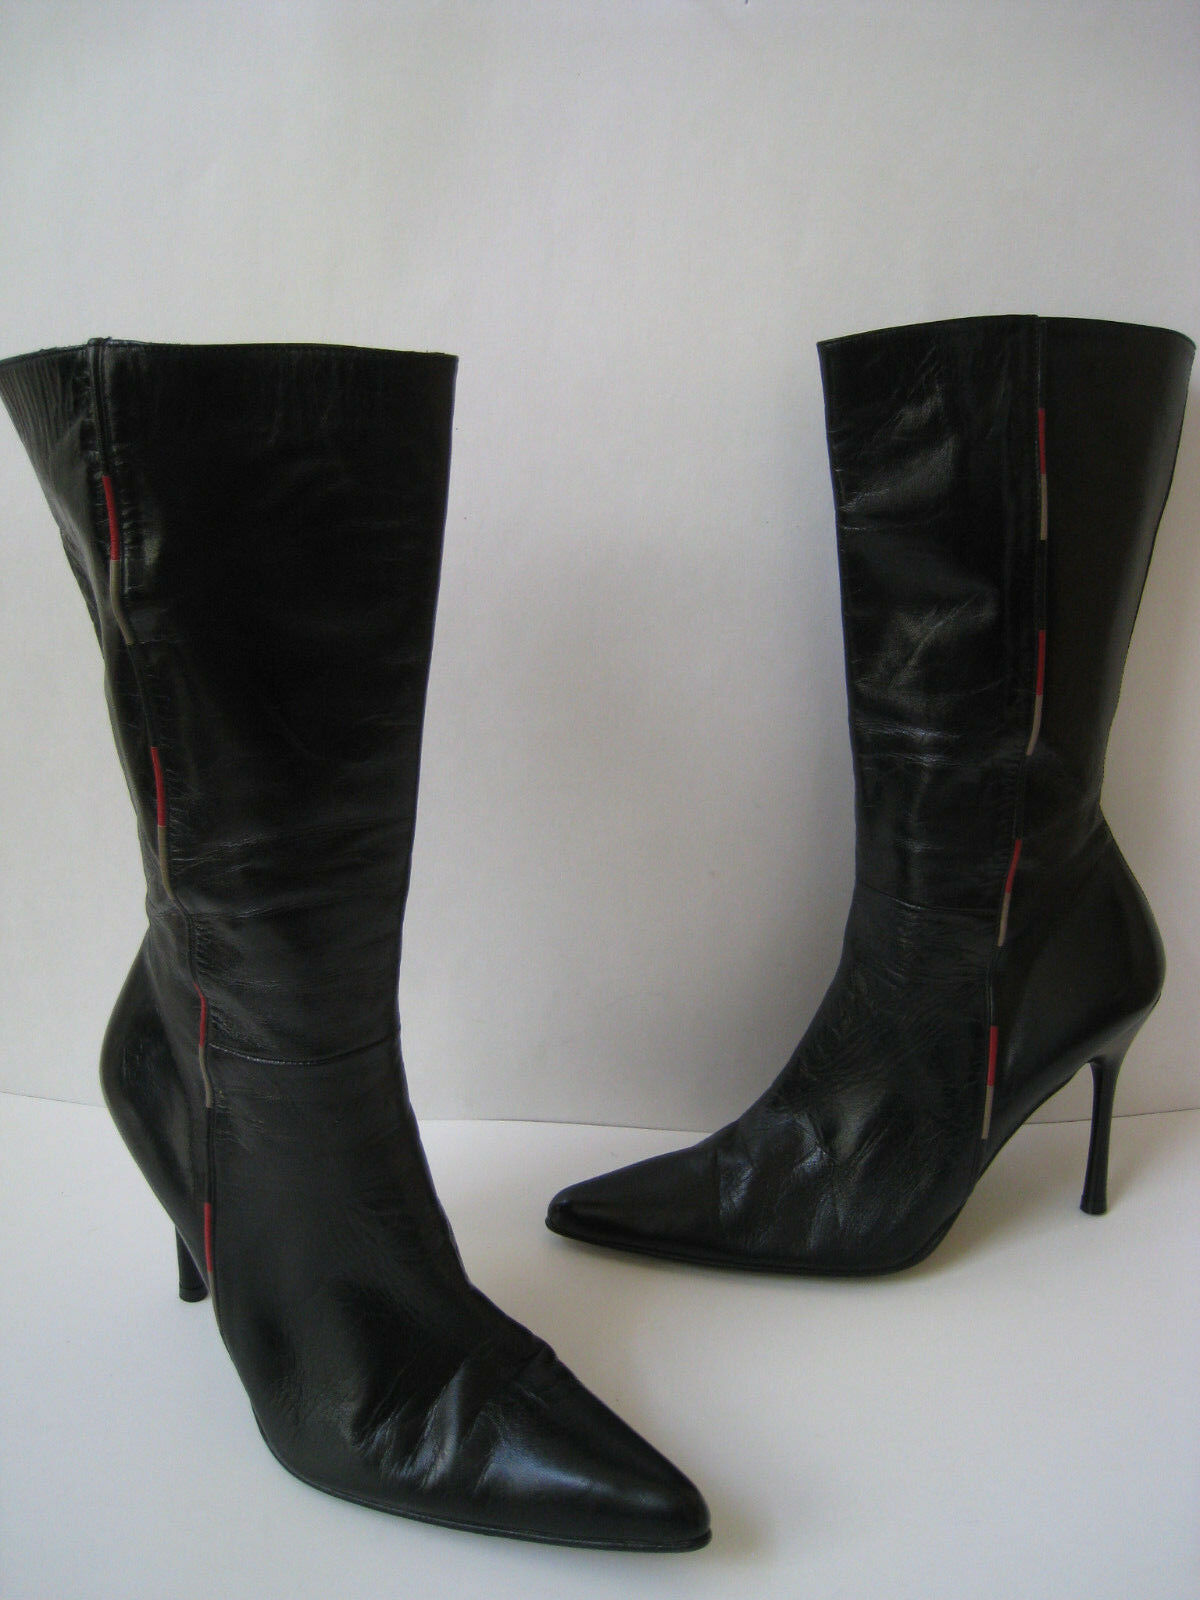 DUNE BLACK LEATHER MID CALF BOOTS WOMEN US 8 EUR 41 HOT MADE IN SPAIN VINTAGE